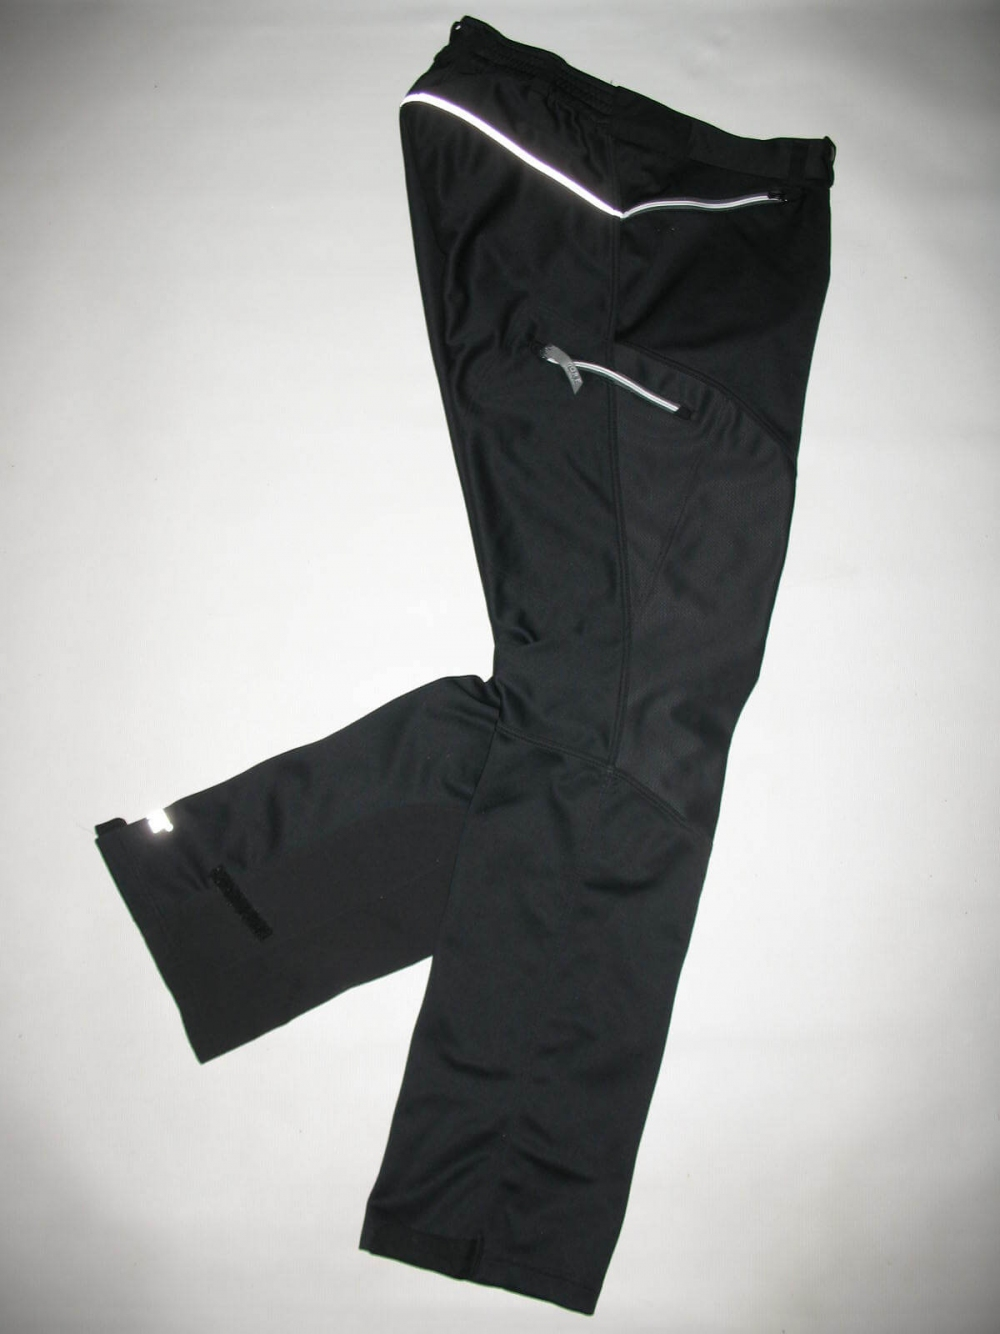 Штаны GORE Countdown Windstopper Soft Shell Pants (размер M) - 6